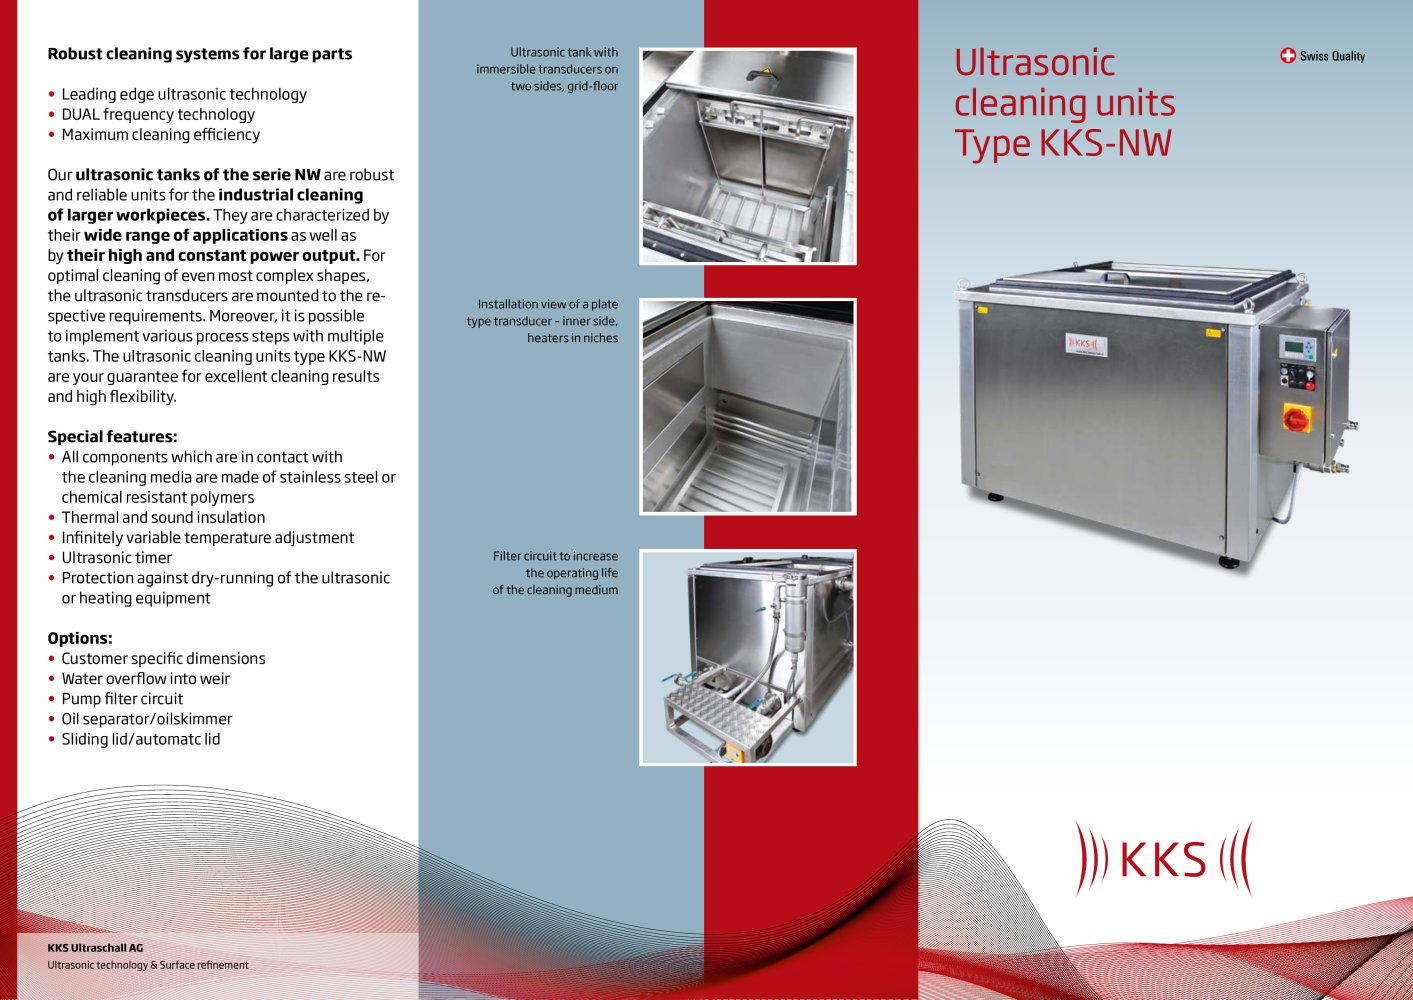 Kks Ultrasonic Cleaning Units Type Nw Ultraschall Ag Pdf Of Filter Circuit 1 2 Pages